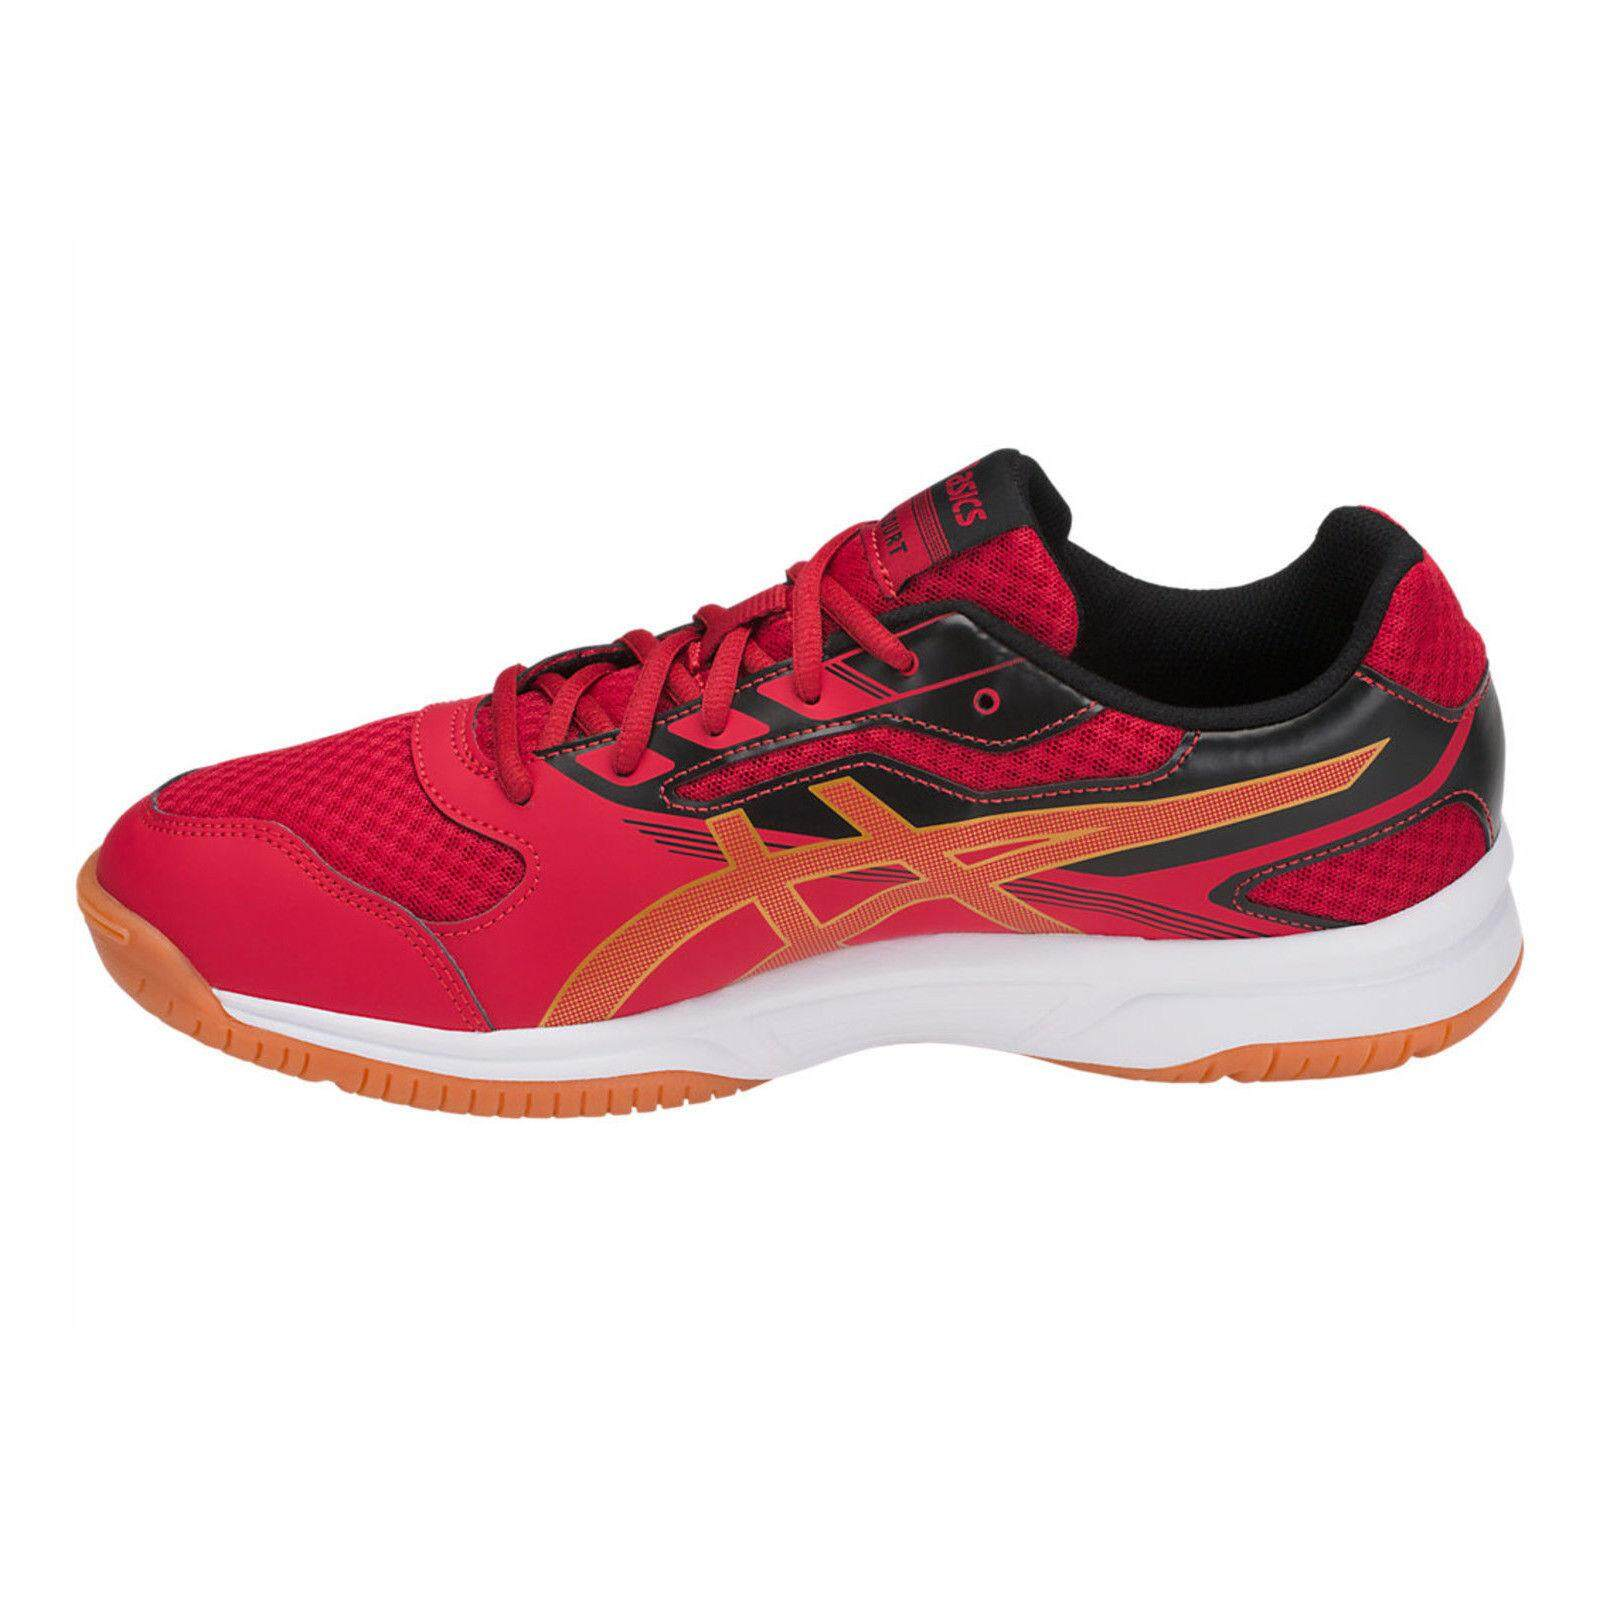 c7bb13435a53 Asics Upcourt 2 Men Volleyball Badminton Shoes B705Y-2394